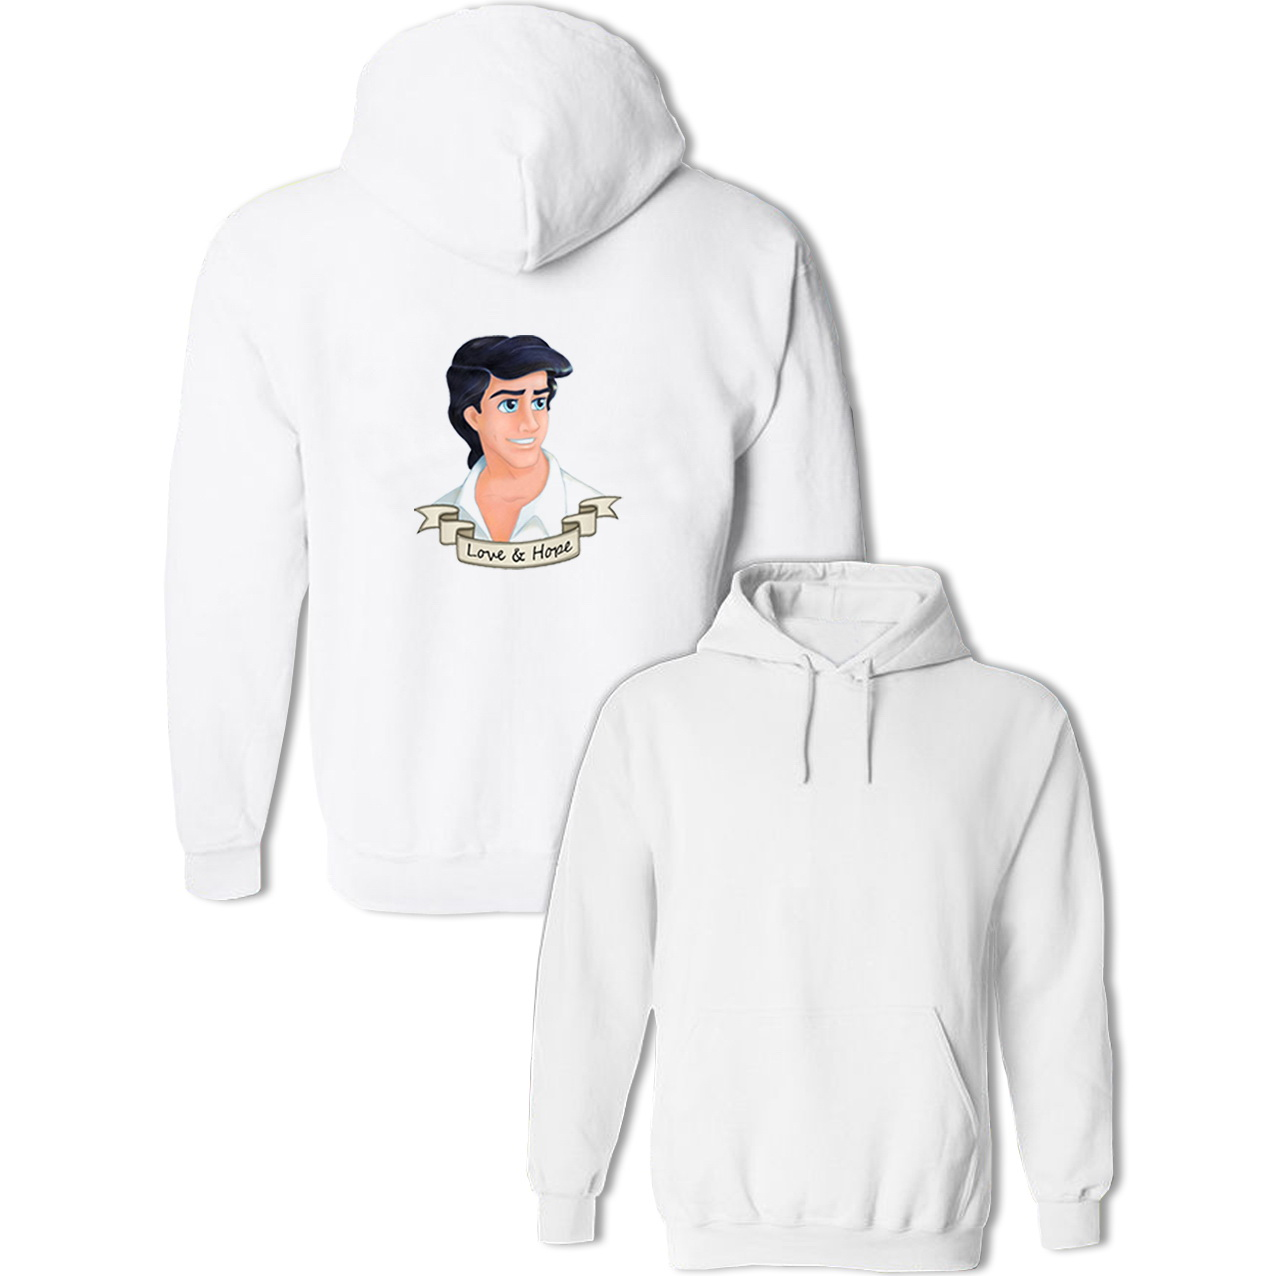 Cartoon Prince Eric Design Hoodie Mens Womens Boys Girls Sweatshirt Multi Color Cotton Pullovers Spring Autumn Winter Tops